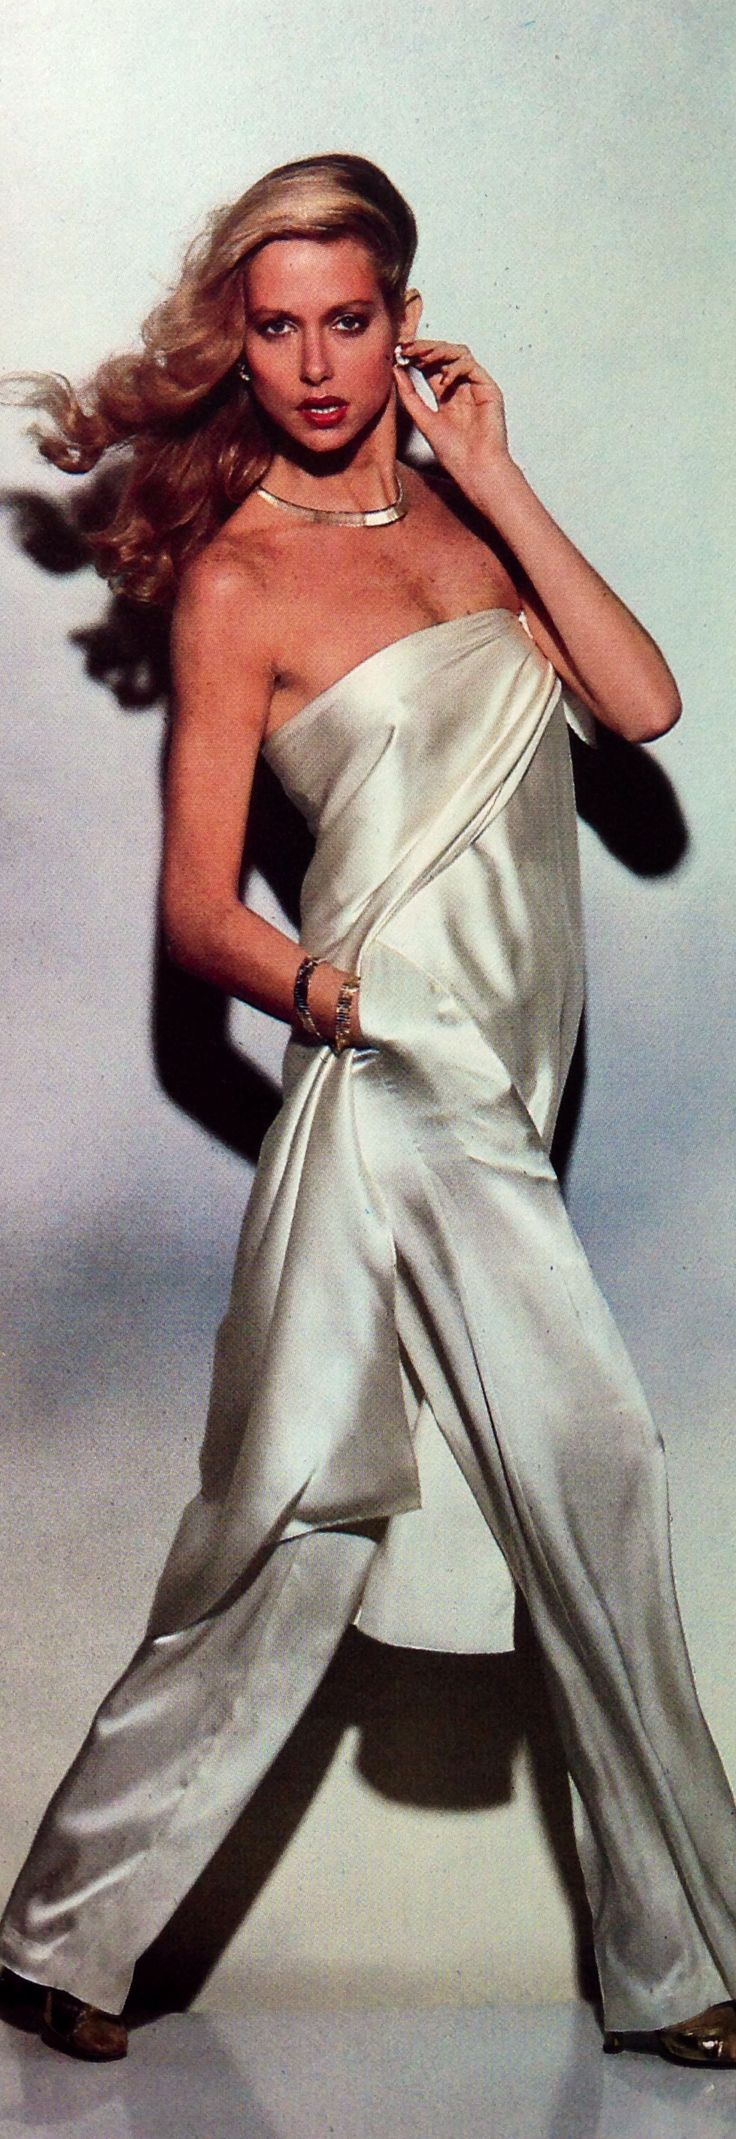 Vintage jumpsuit 1979 vintage fashion color photo print ad models magazine designer 70s 80s white silk jumpsuit pantsuit tunic pants